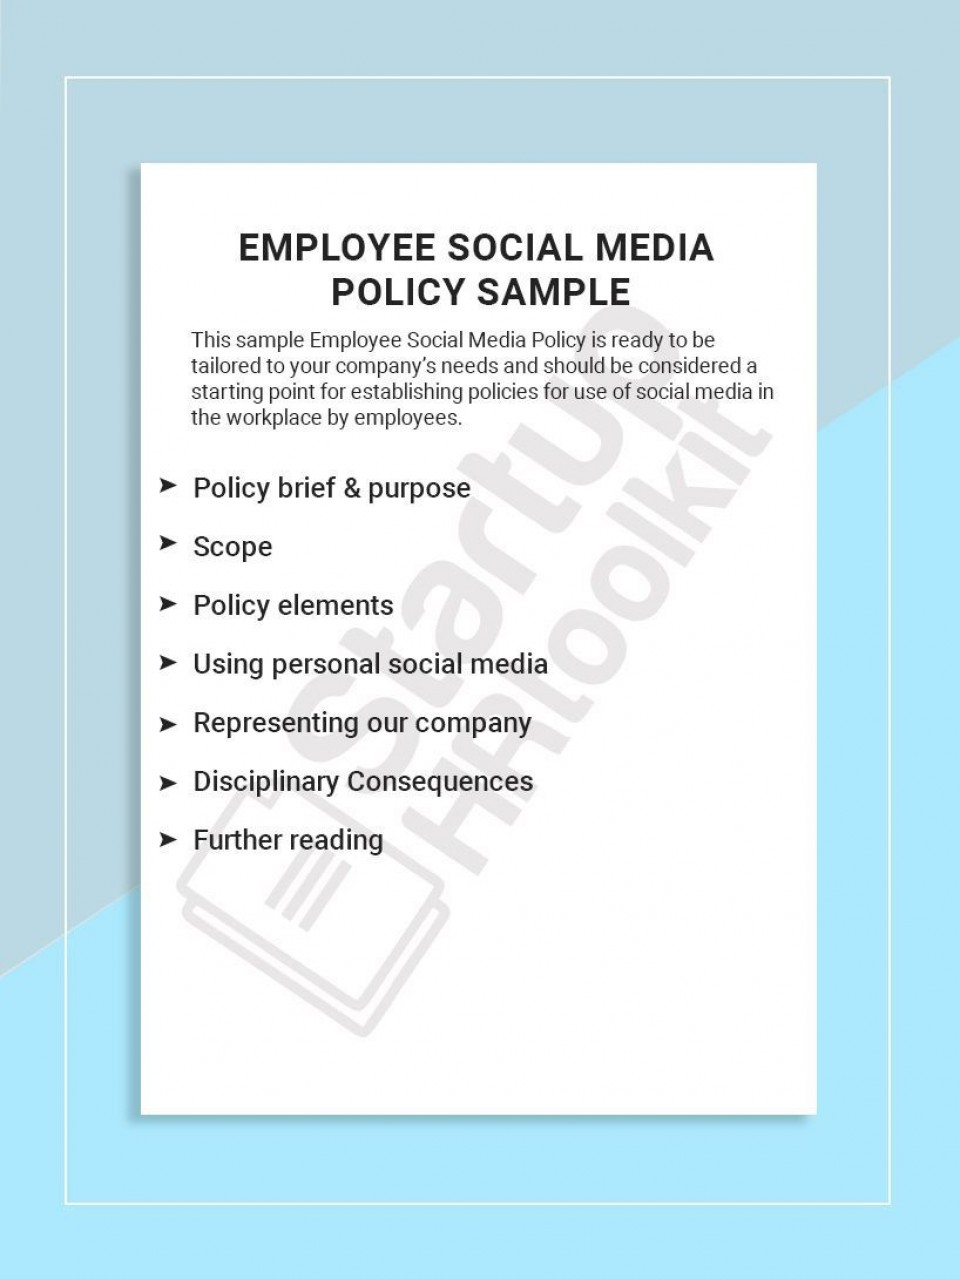 001 Best Social Media Policie Template High Def  Simple Policy Australia Example For Small Busines960